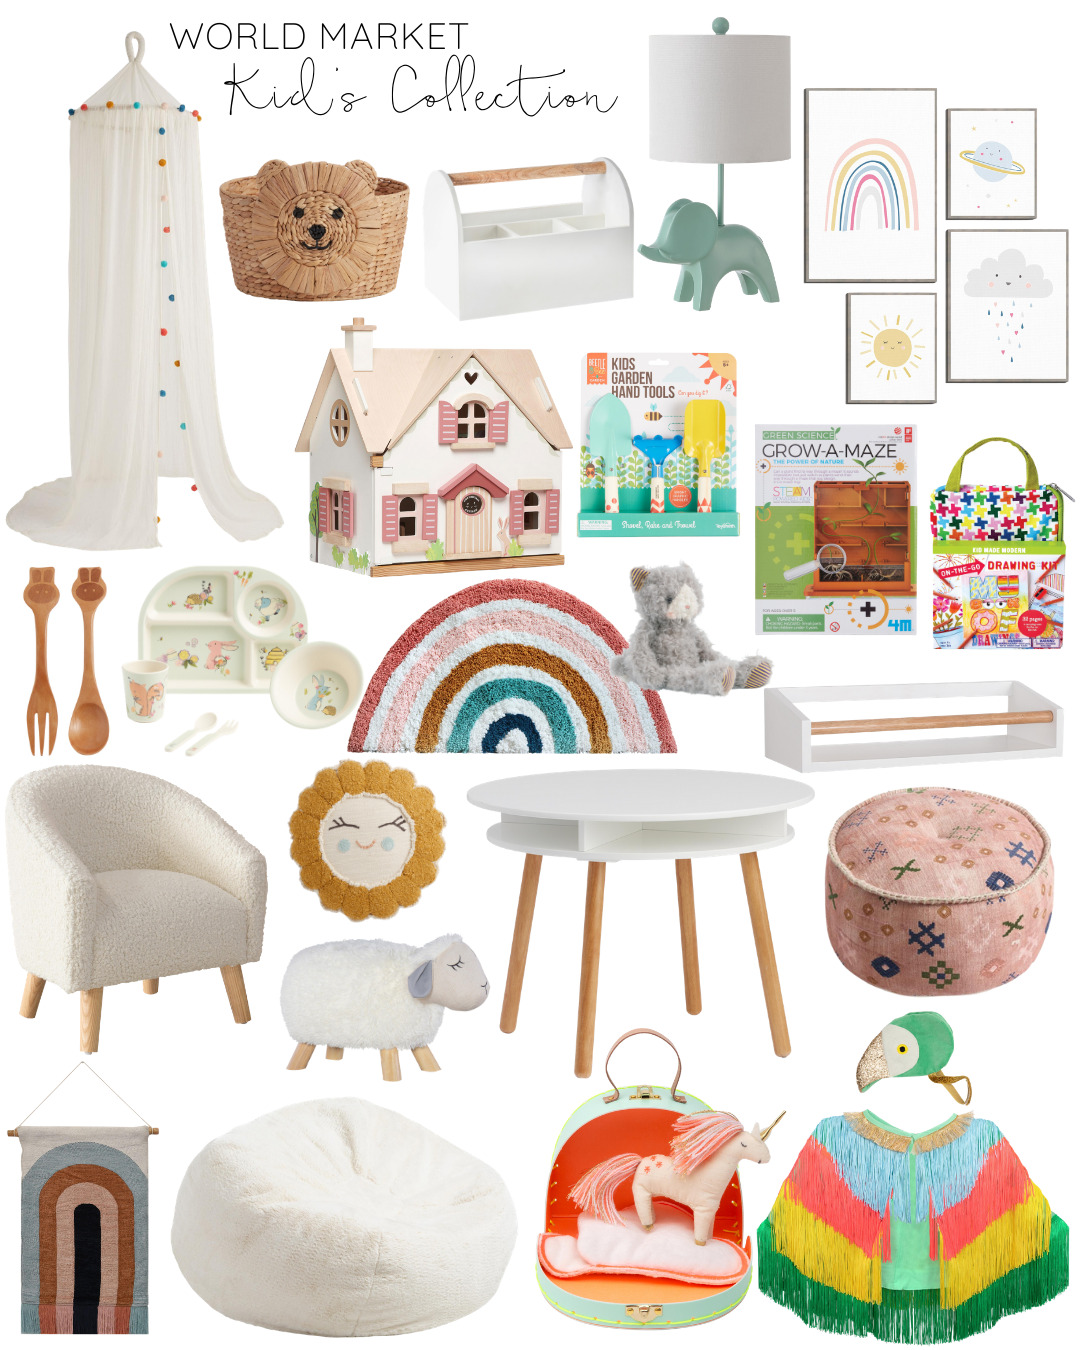 World Market Kid's Collection Favorites // The new collection is full of the cutest furniture, beautiful and fun toys and games, and stylish décor pieces and storage for your kid's play area or bedroom! | @glitterinclexi | GLITTERINC.COM